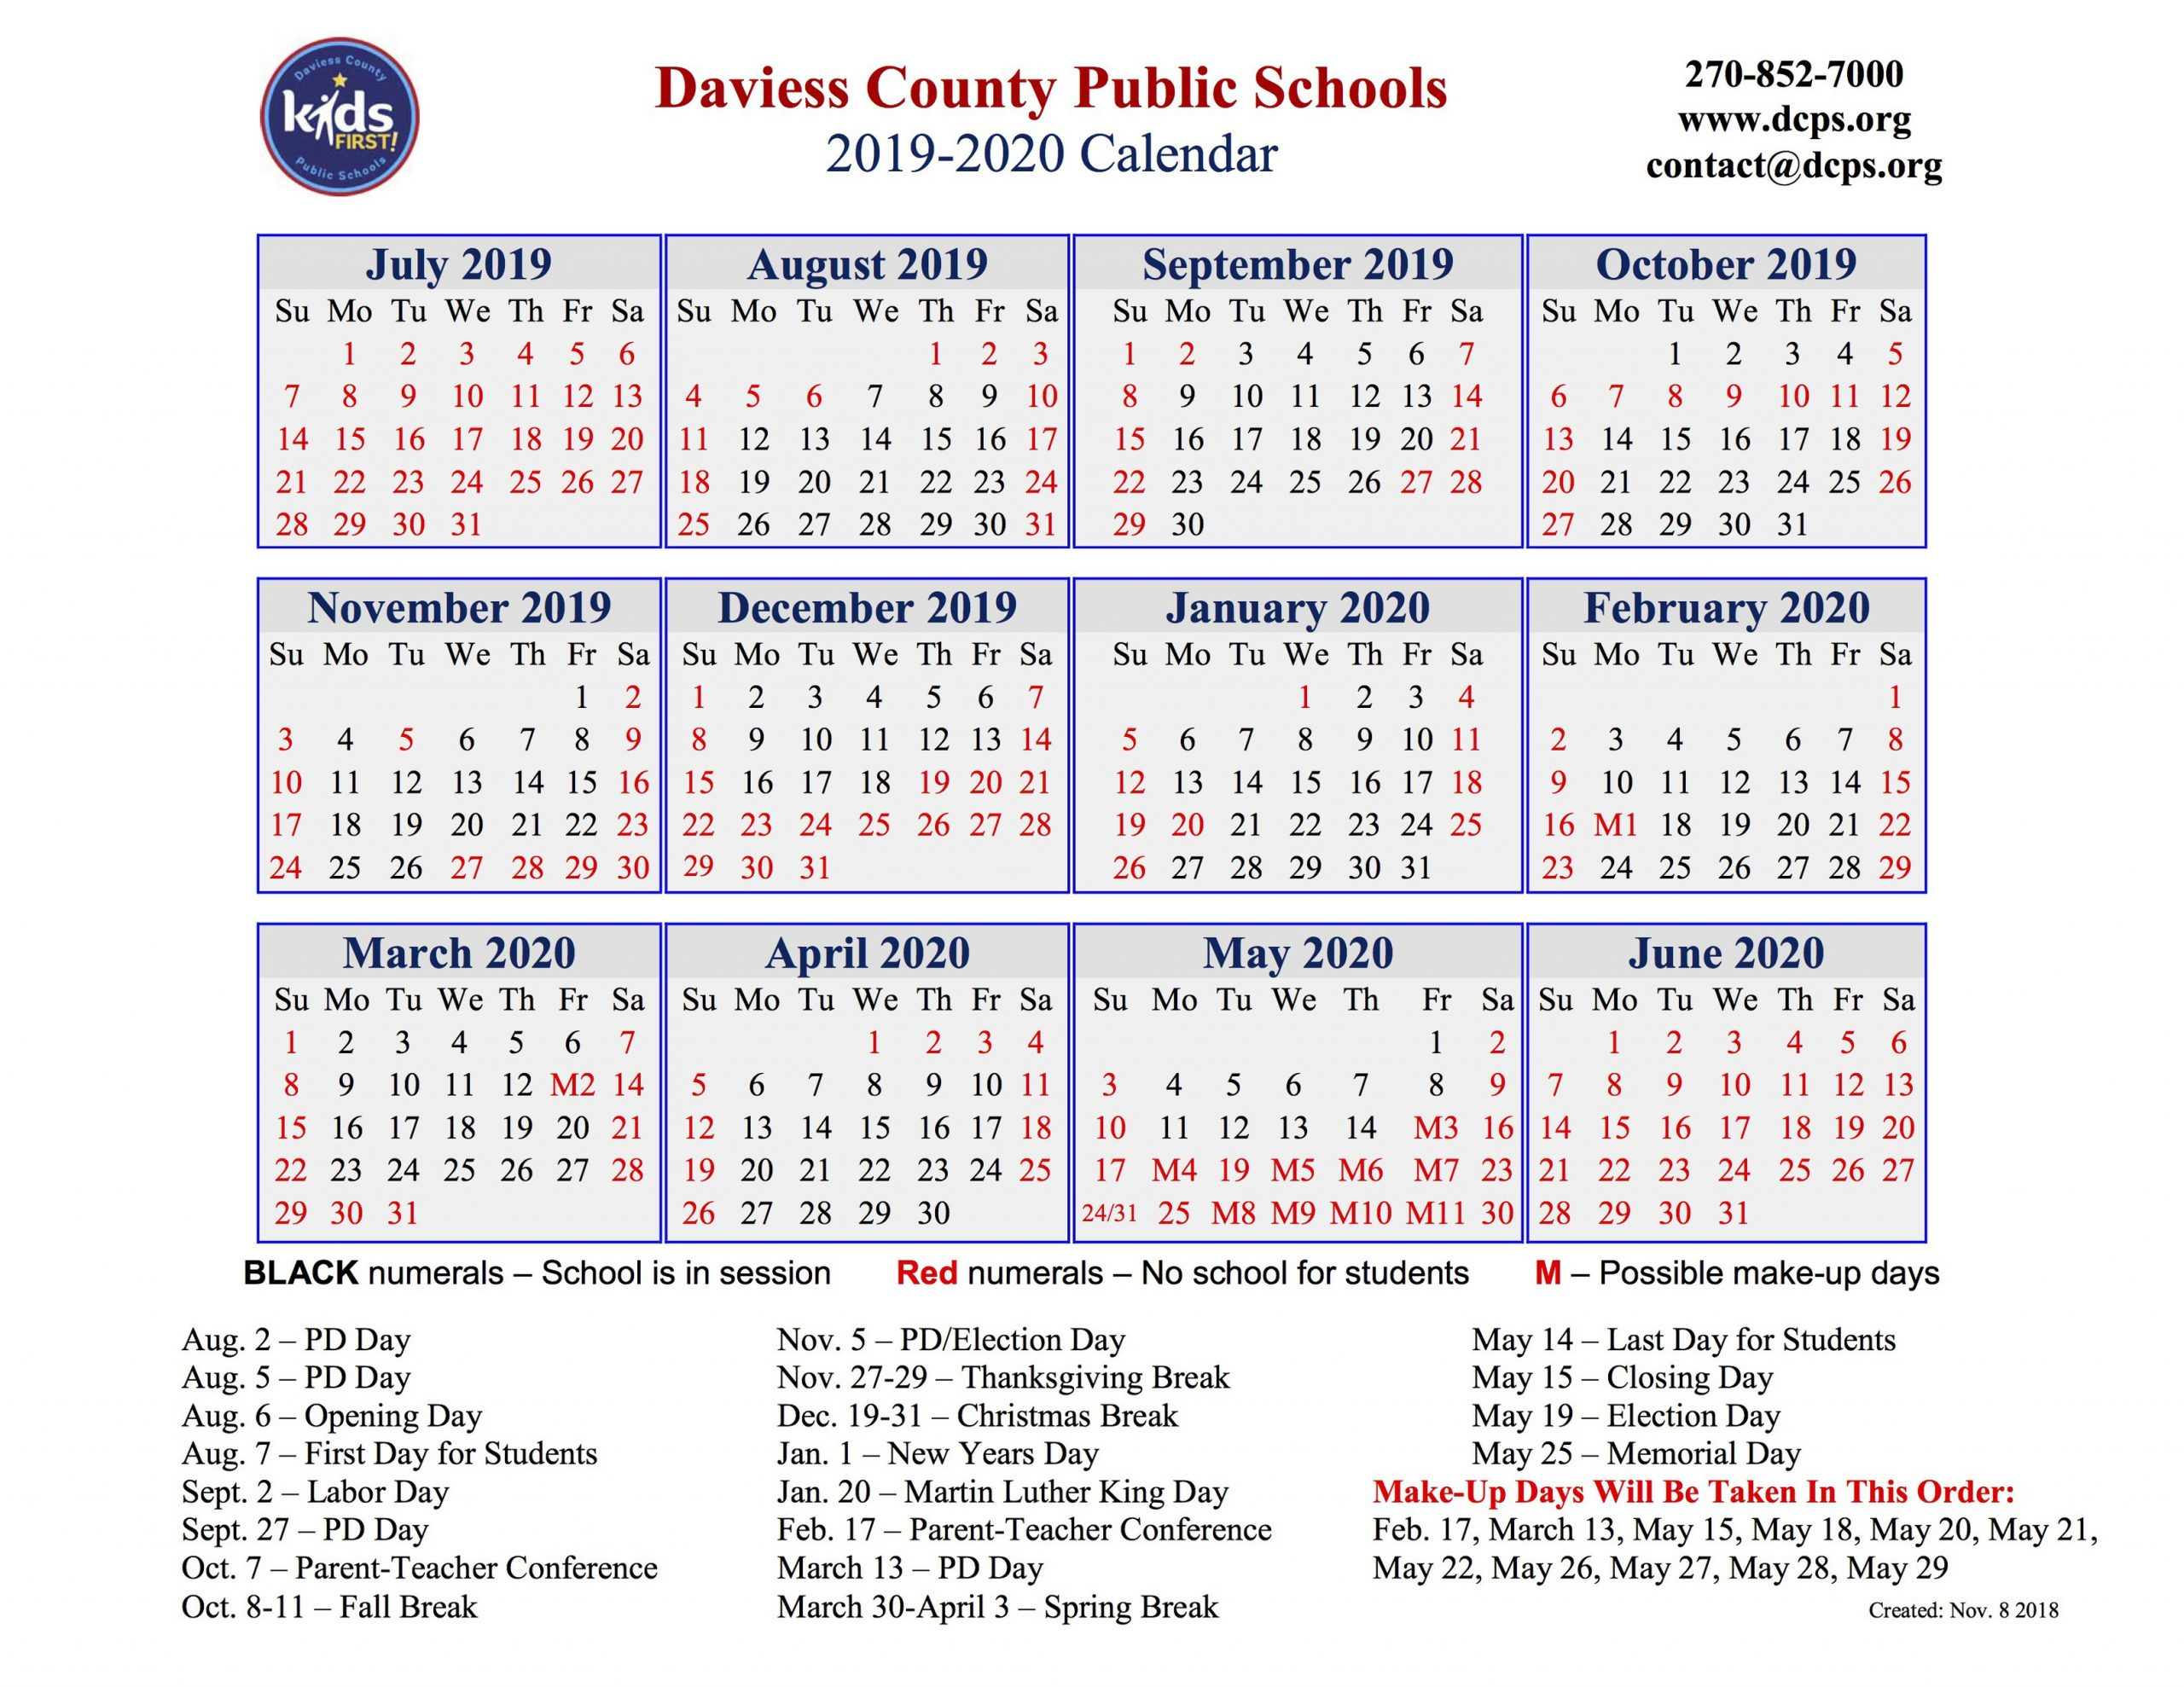 Dcps Approves 2019-2020 Calendar - The Owensboro Times